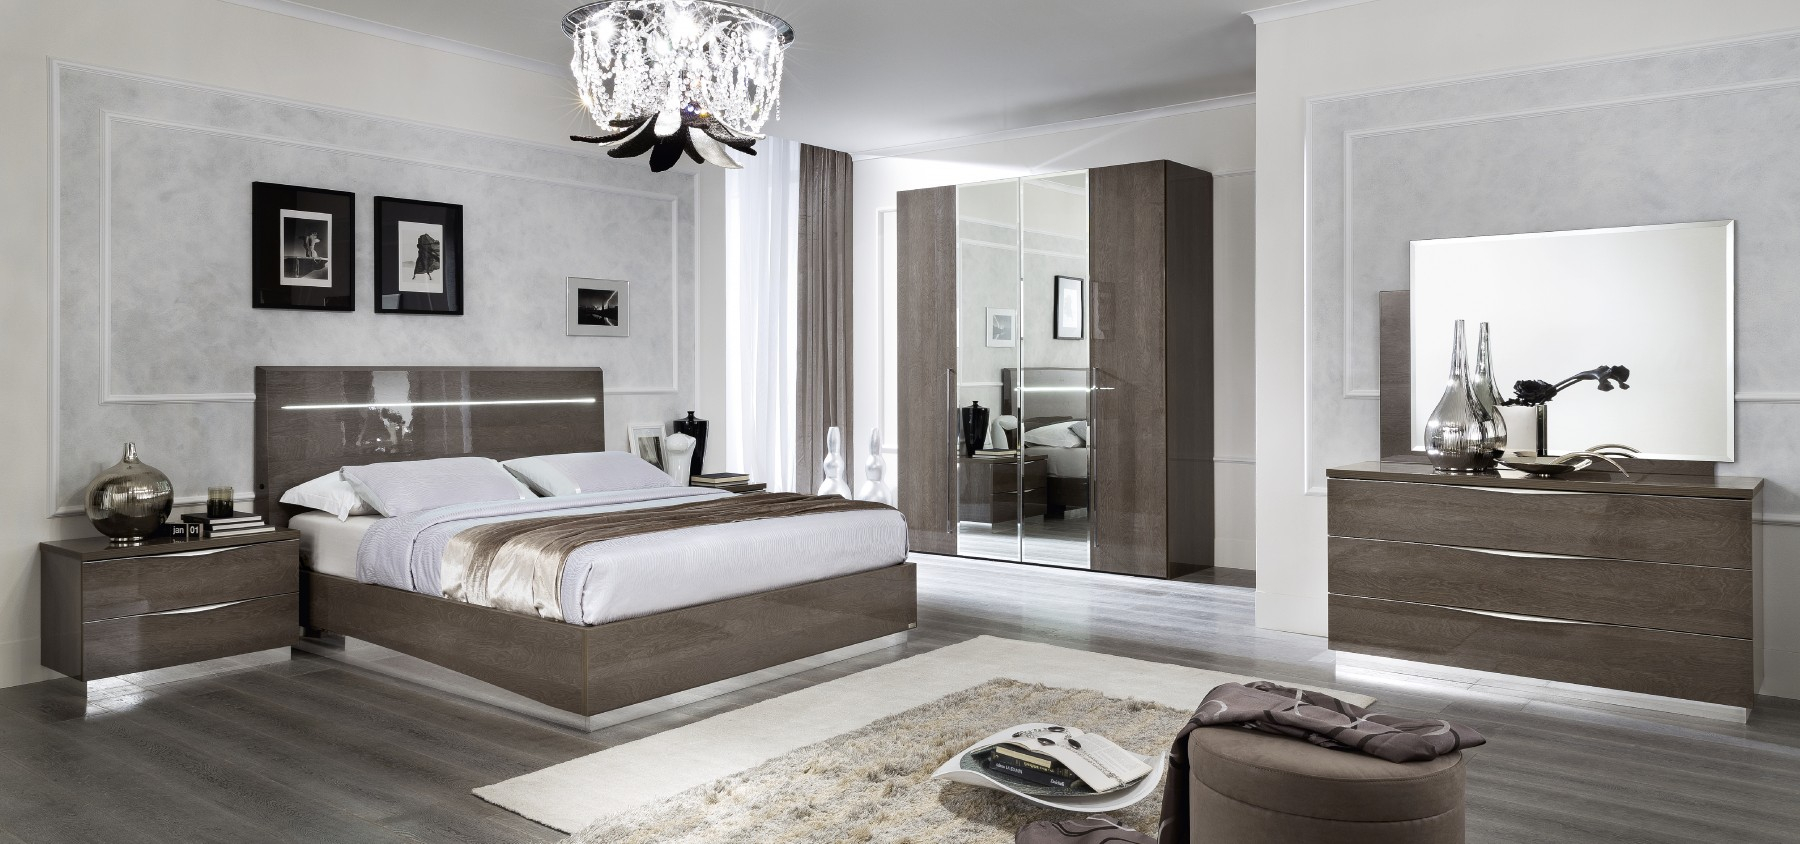 Camel Group Platinum Modern Italian Bedroom Setplatinum Modern with 14 Some of the Coolest Ideas How to Improve Modern Italian Bedroom